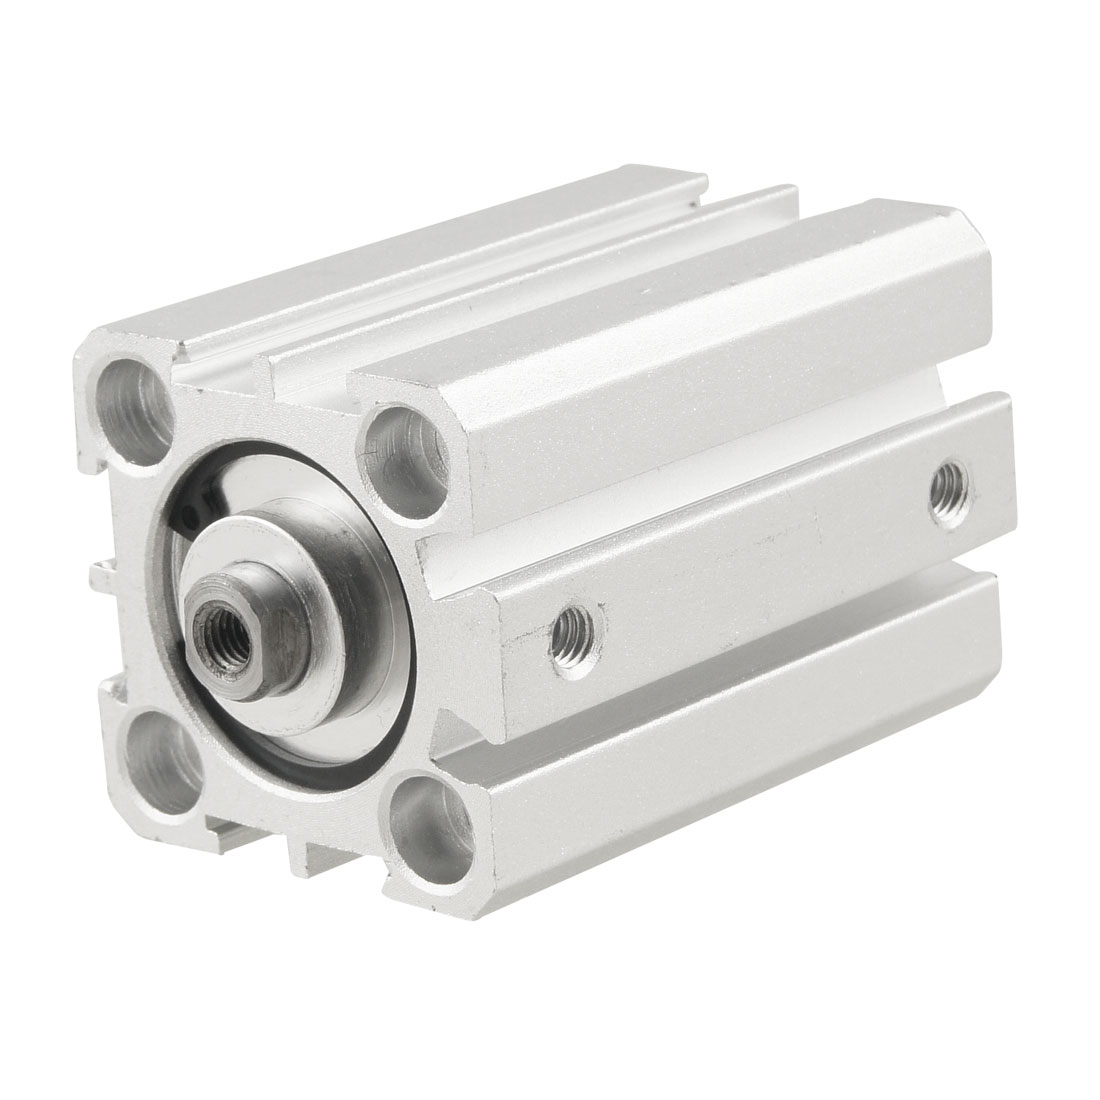 25mm Bore 40mm Stroke TSDA Rods Pneumatic Air Cylinder